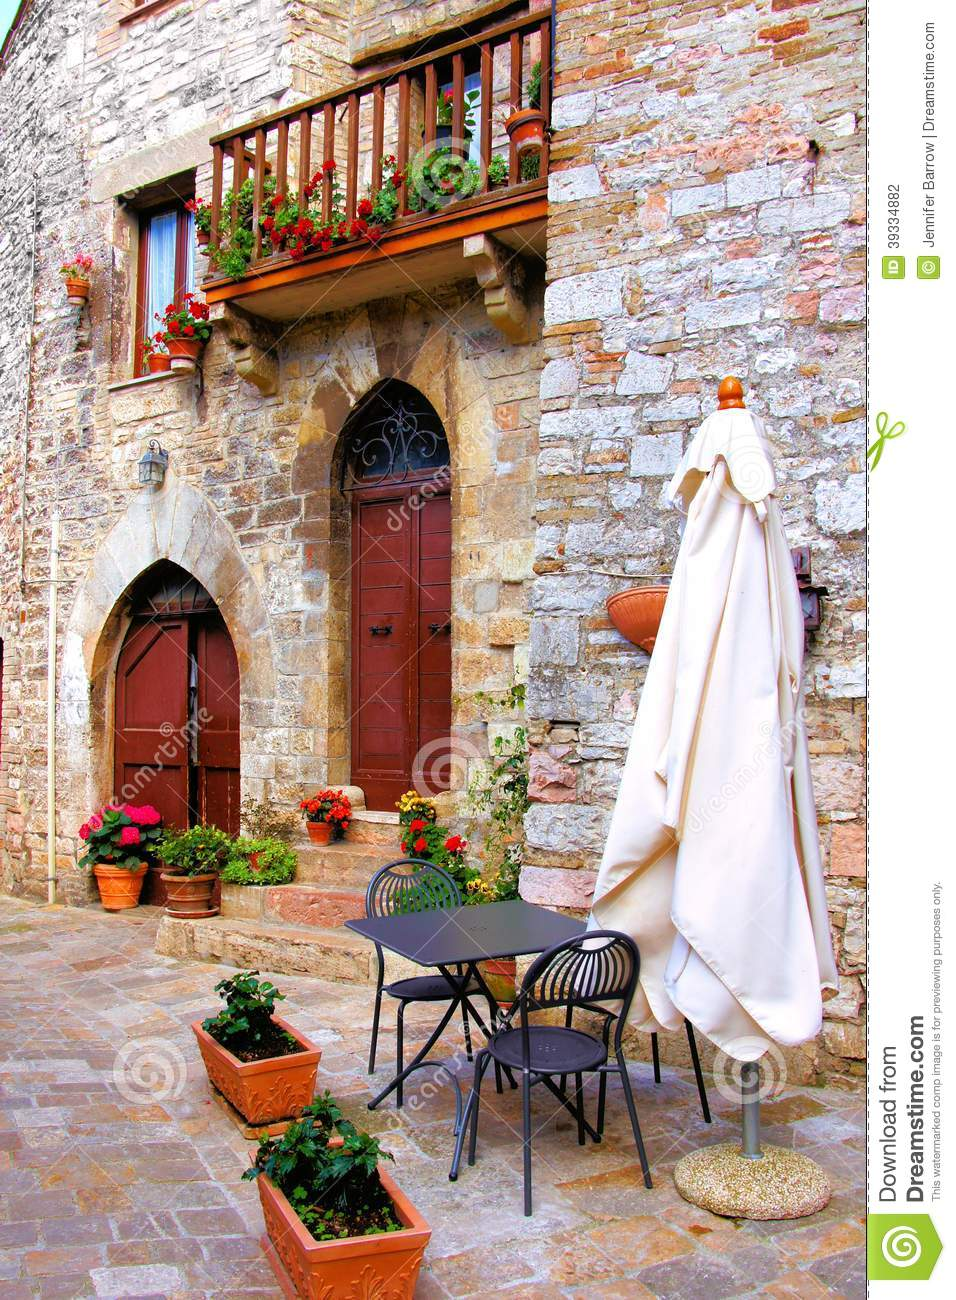 Picturesque Italian Cafe Stock Photo - Image: 39334882